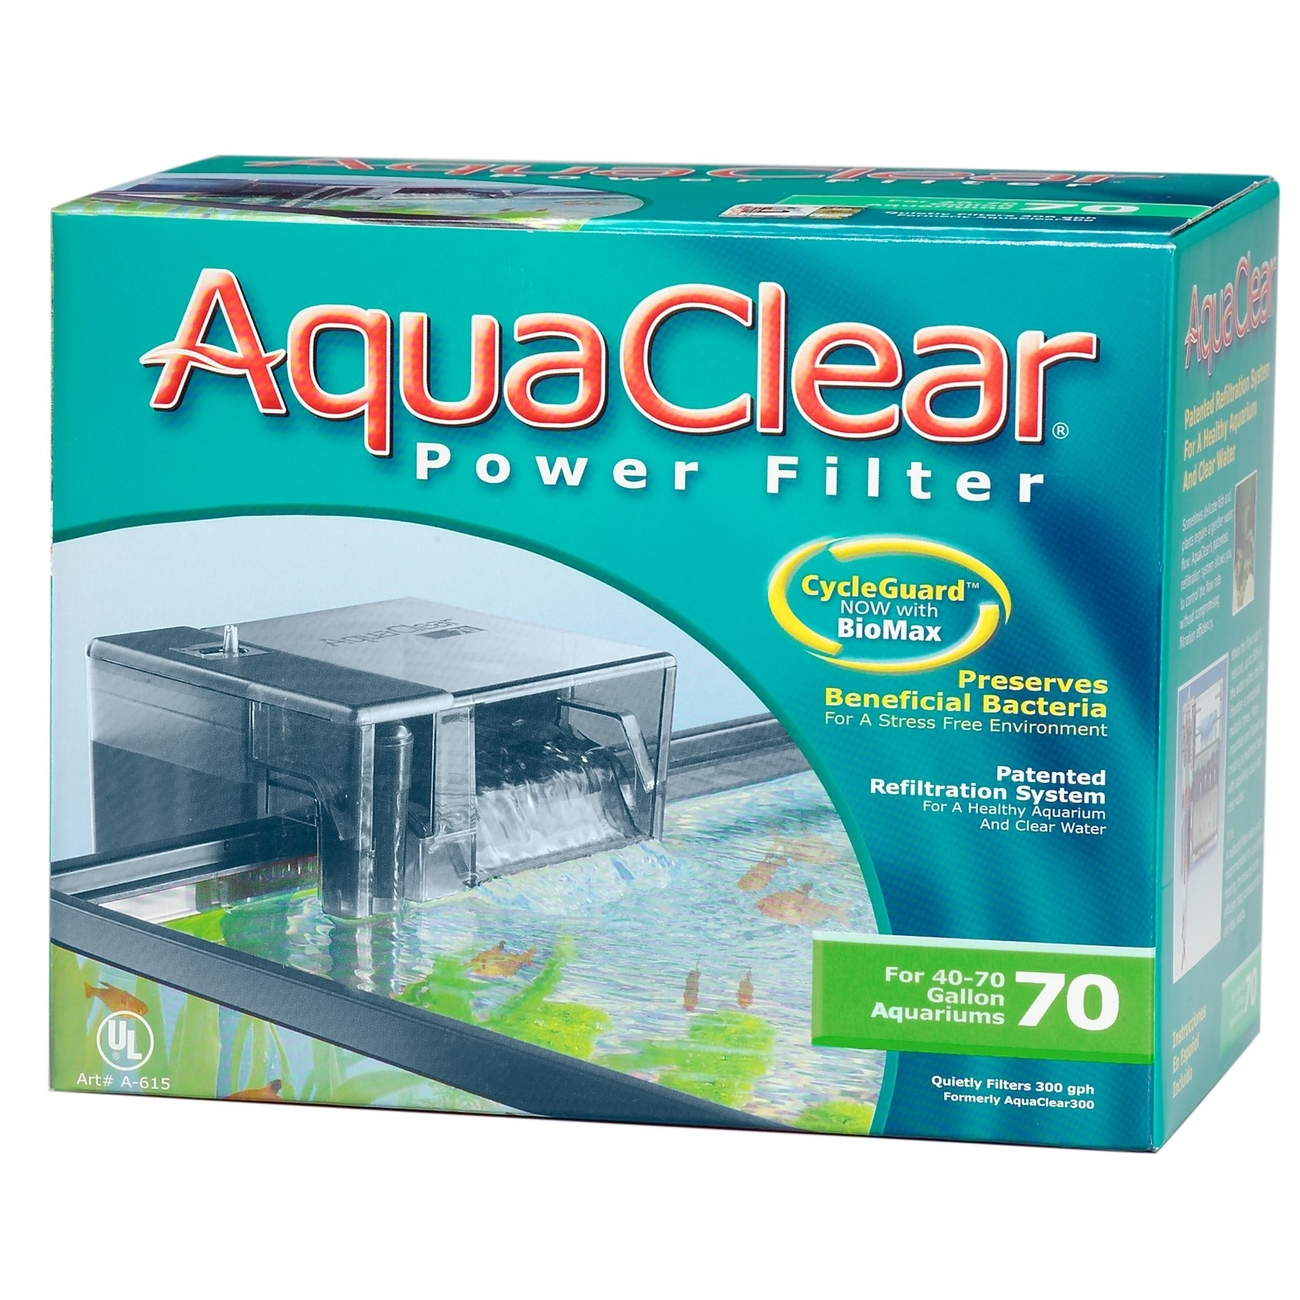 Hagen AquaClear Power Filter, 70er - 27,5 x 22 x 16 cm